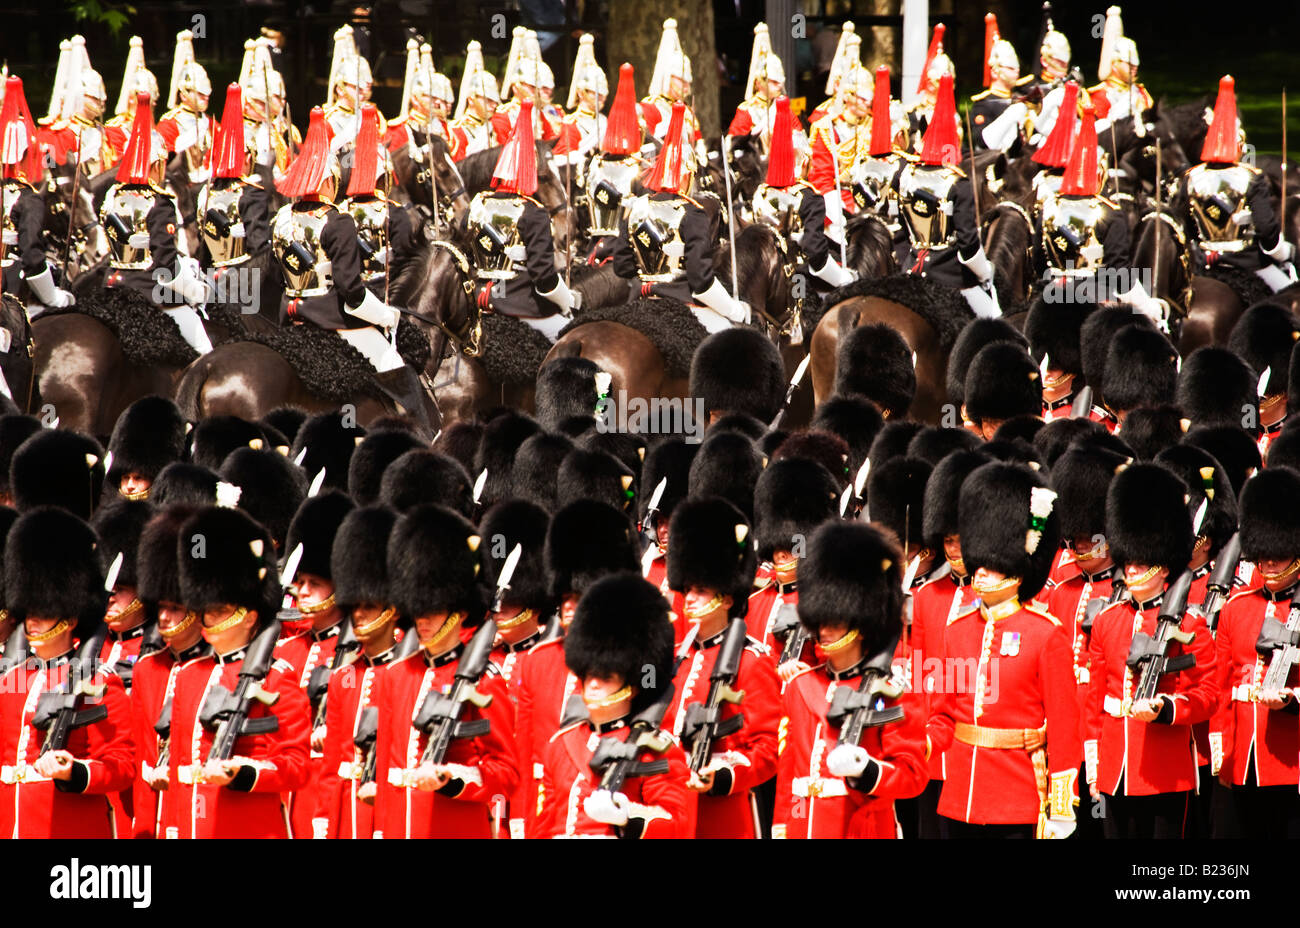 Royal guards in Trooping the Colour ceremony, Wales, London, England,UK Stock Photo